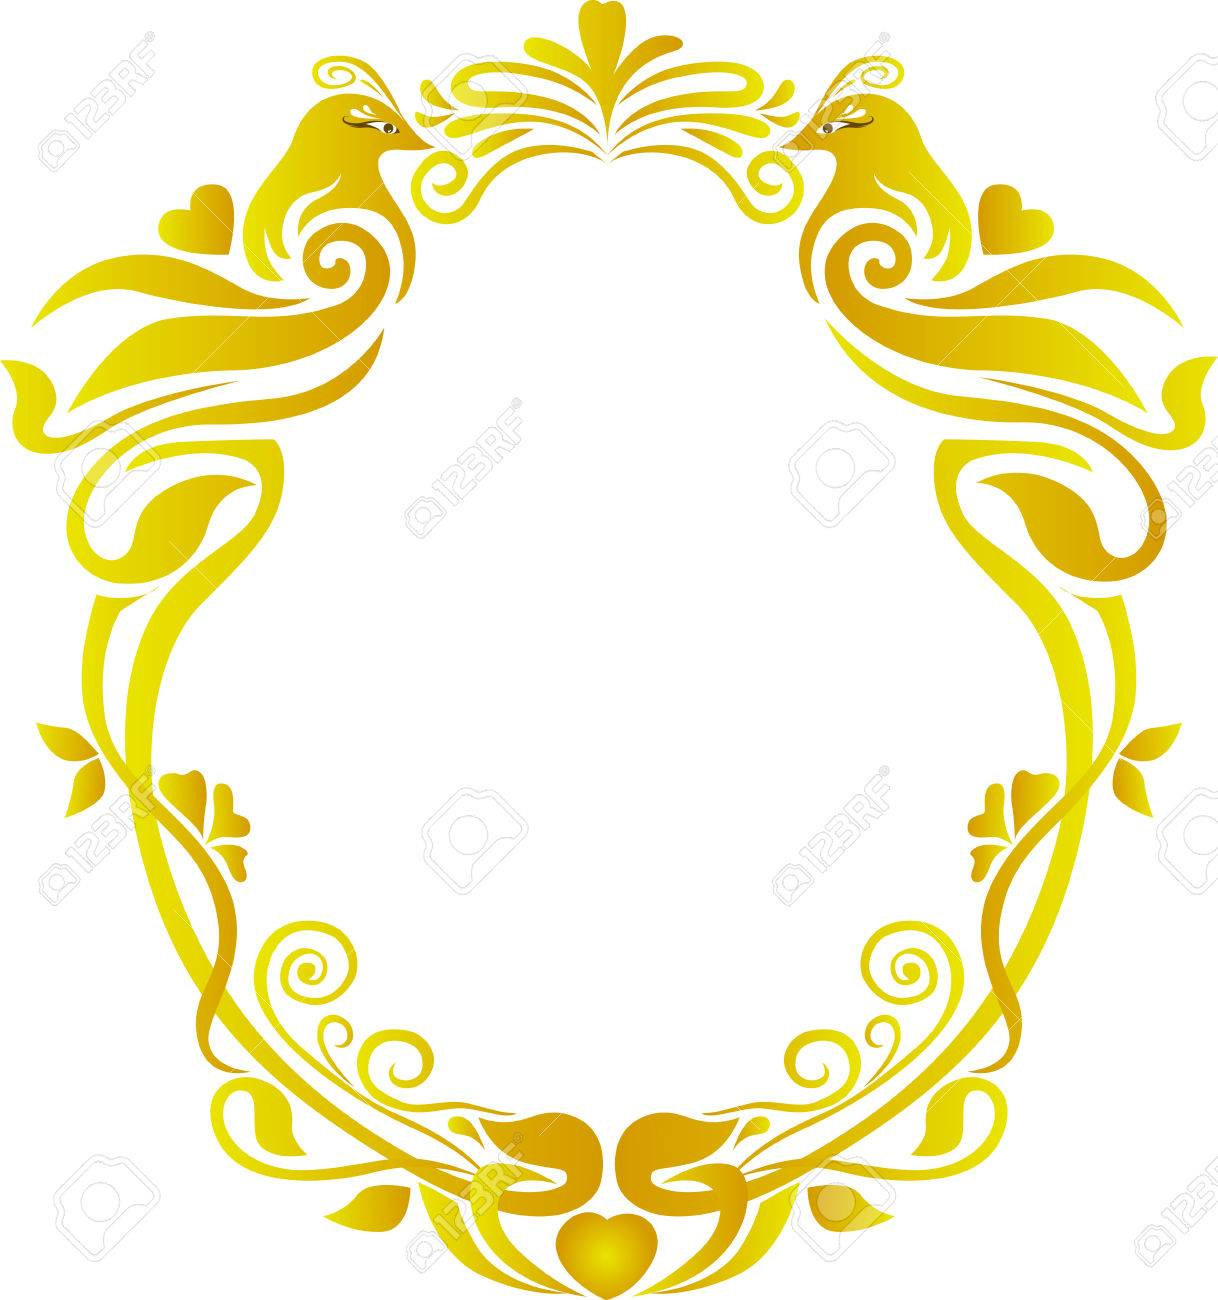 Wedding Gold Oval Frame Floral Royalty Free Cliparts, Vectors, And ...